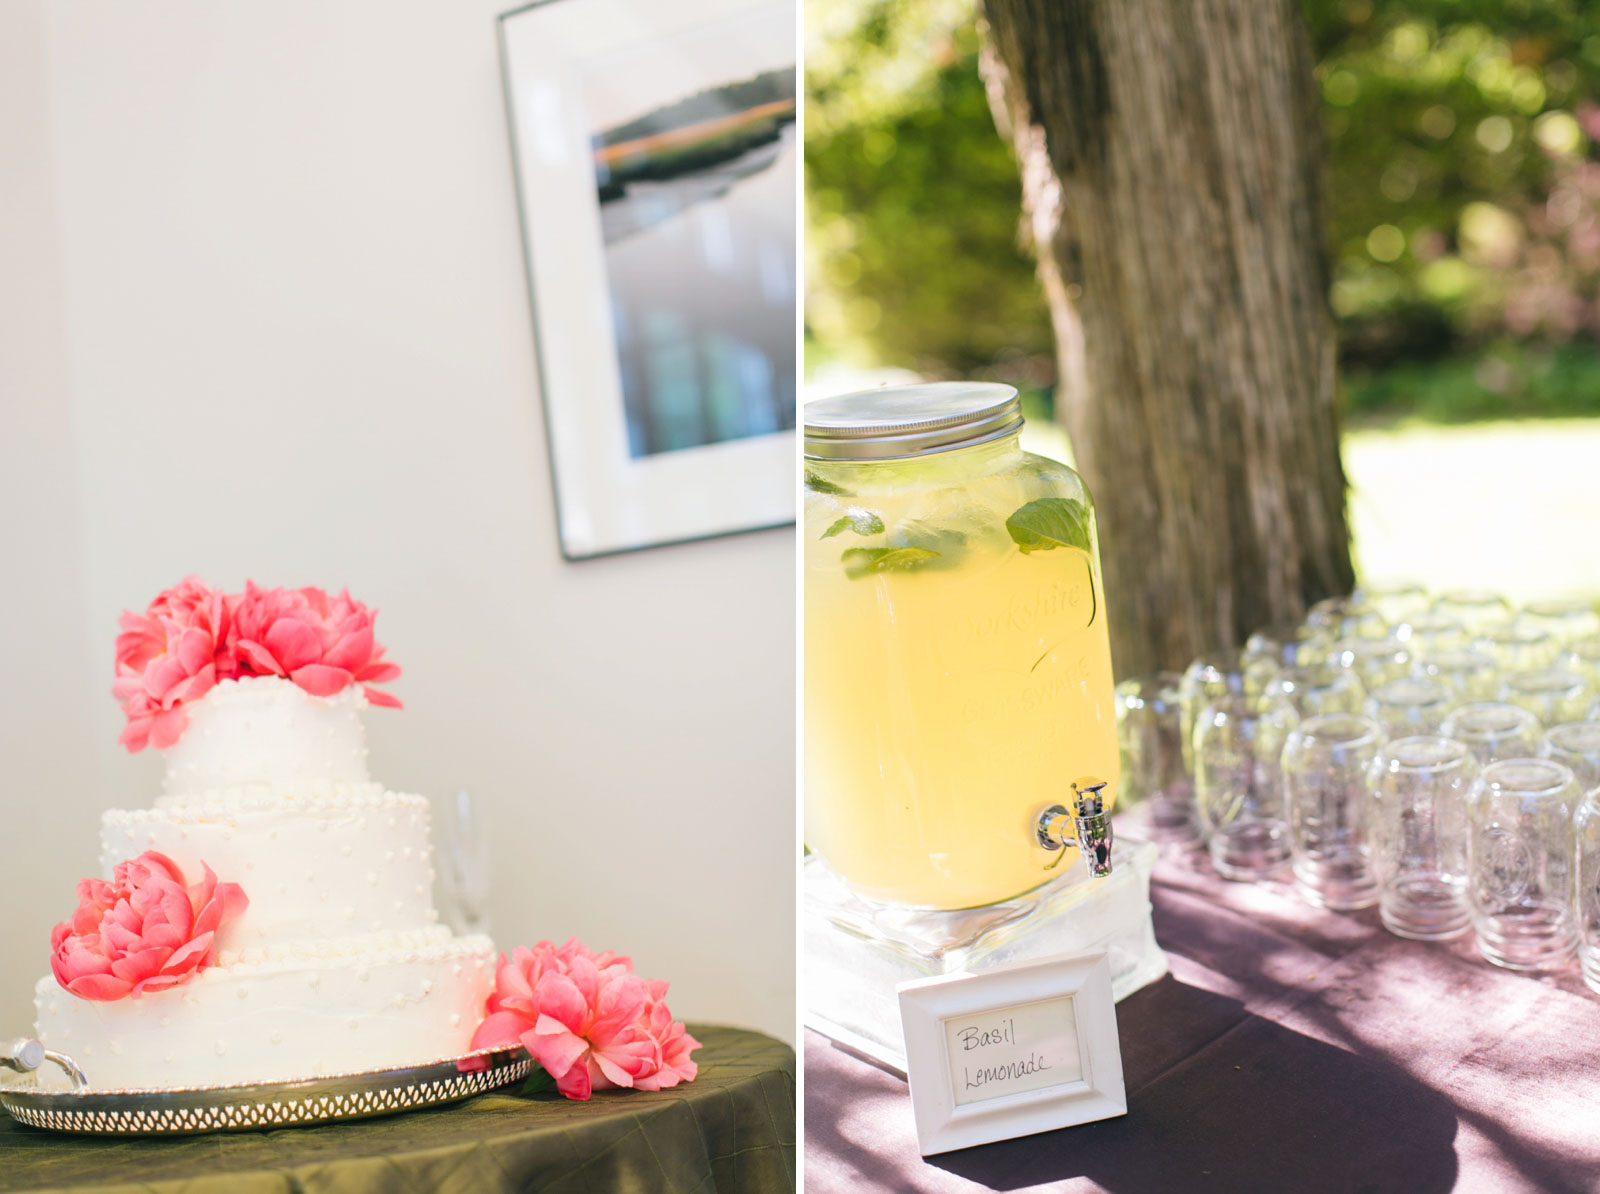 simple wedding cake with large pink peonies, basil lemonade in mason jars for guests to enjoy